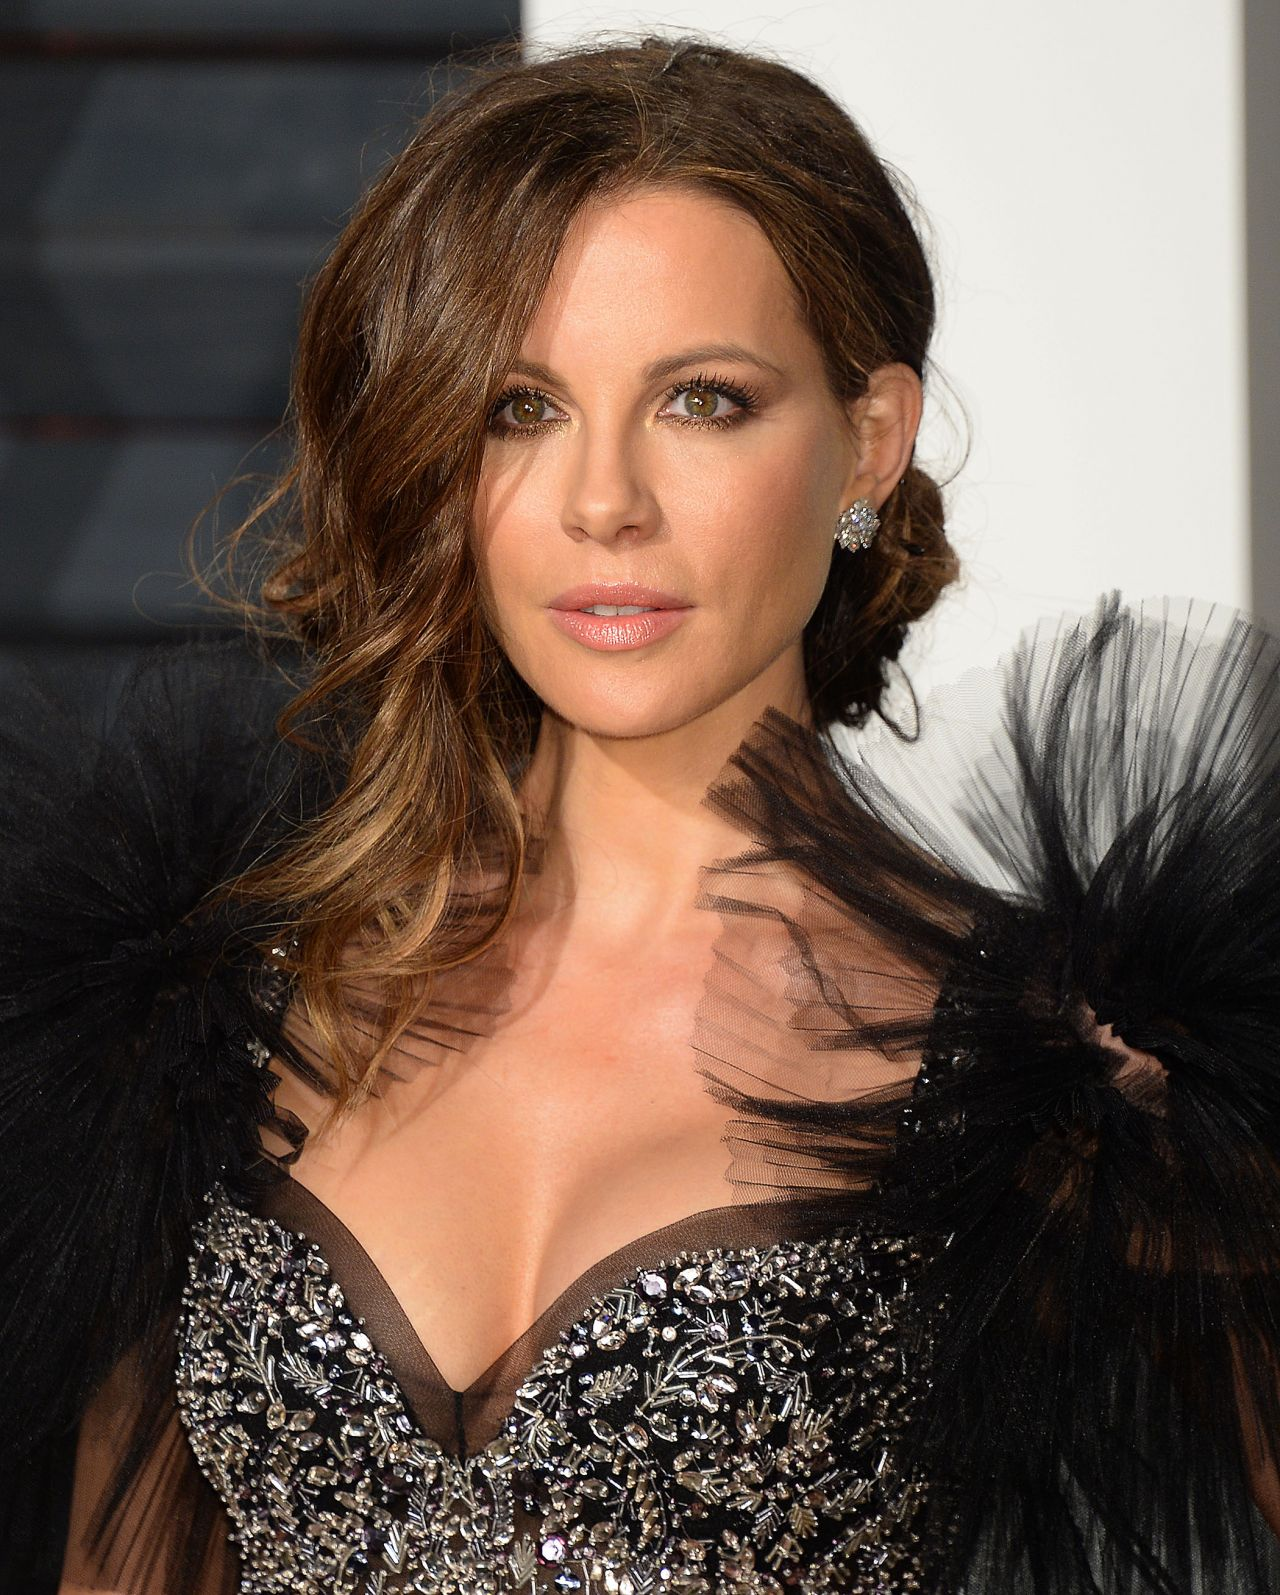 Kate Beckinsale – Vanity Fair Oscar 2017 Party in Los Angeles Kate Beckinsale